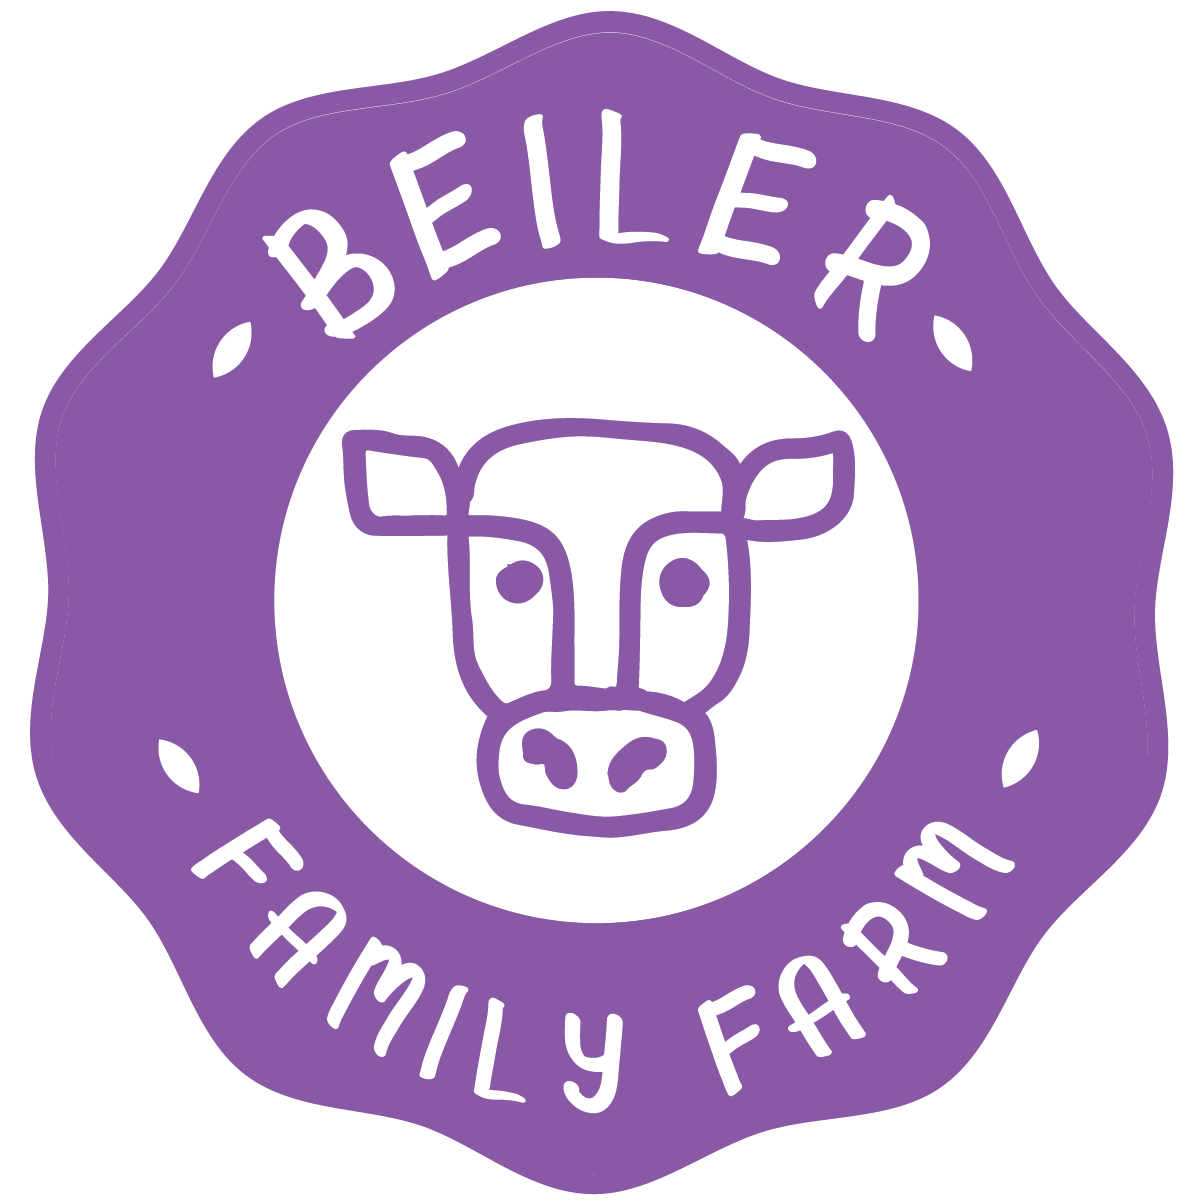 Beiler Family Farm Logo